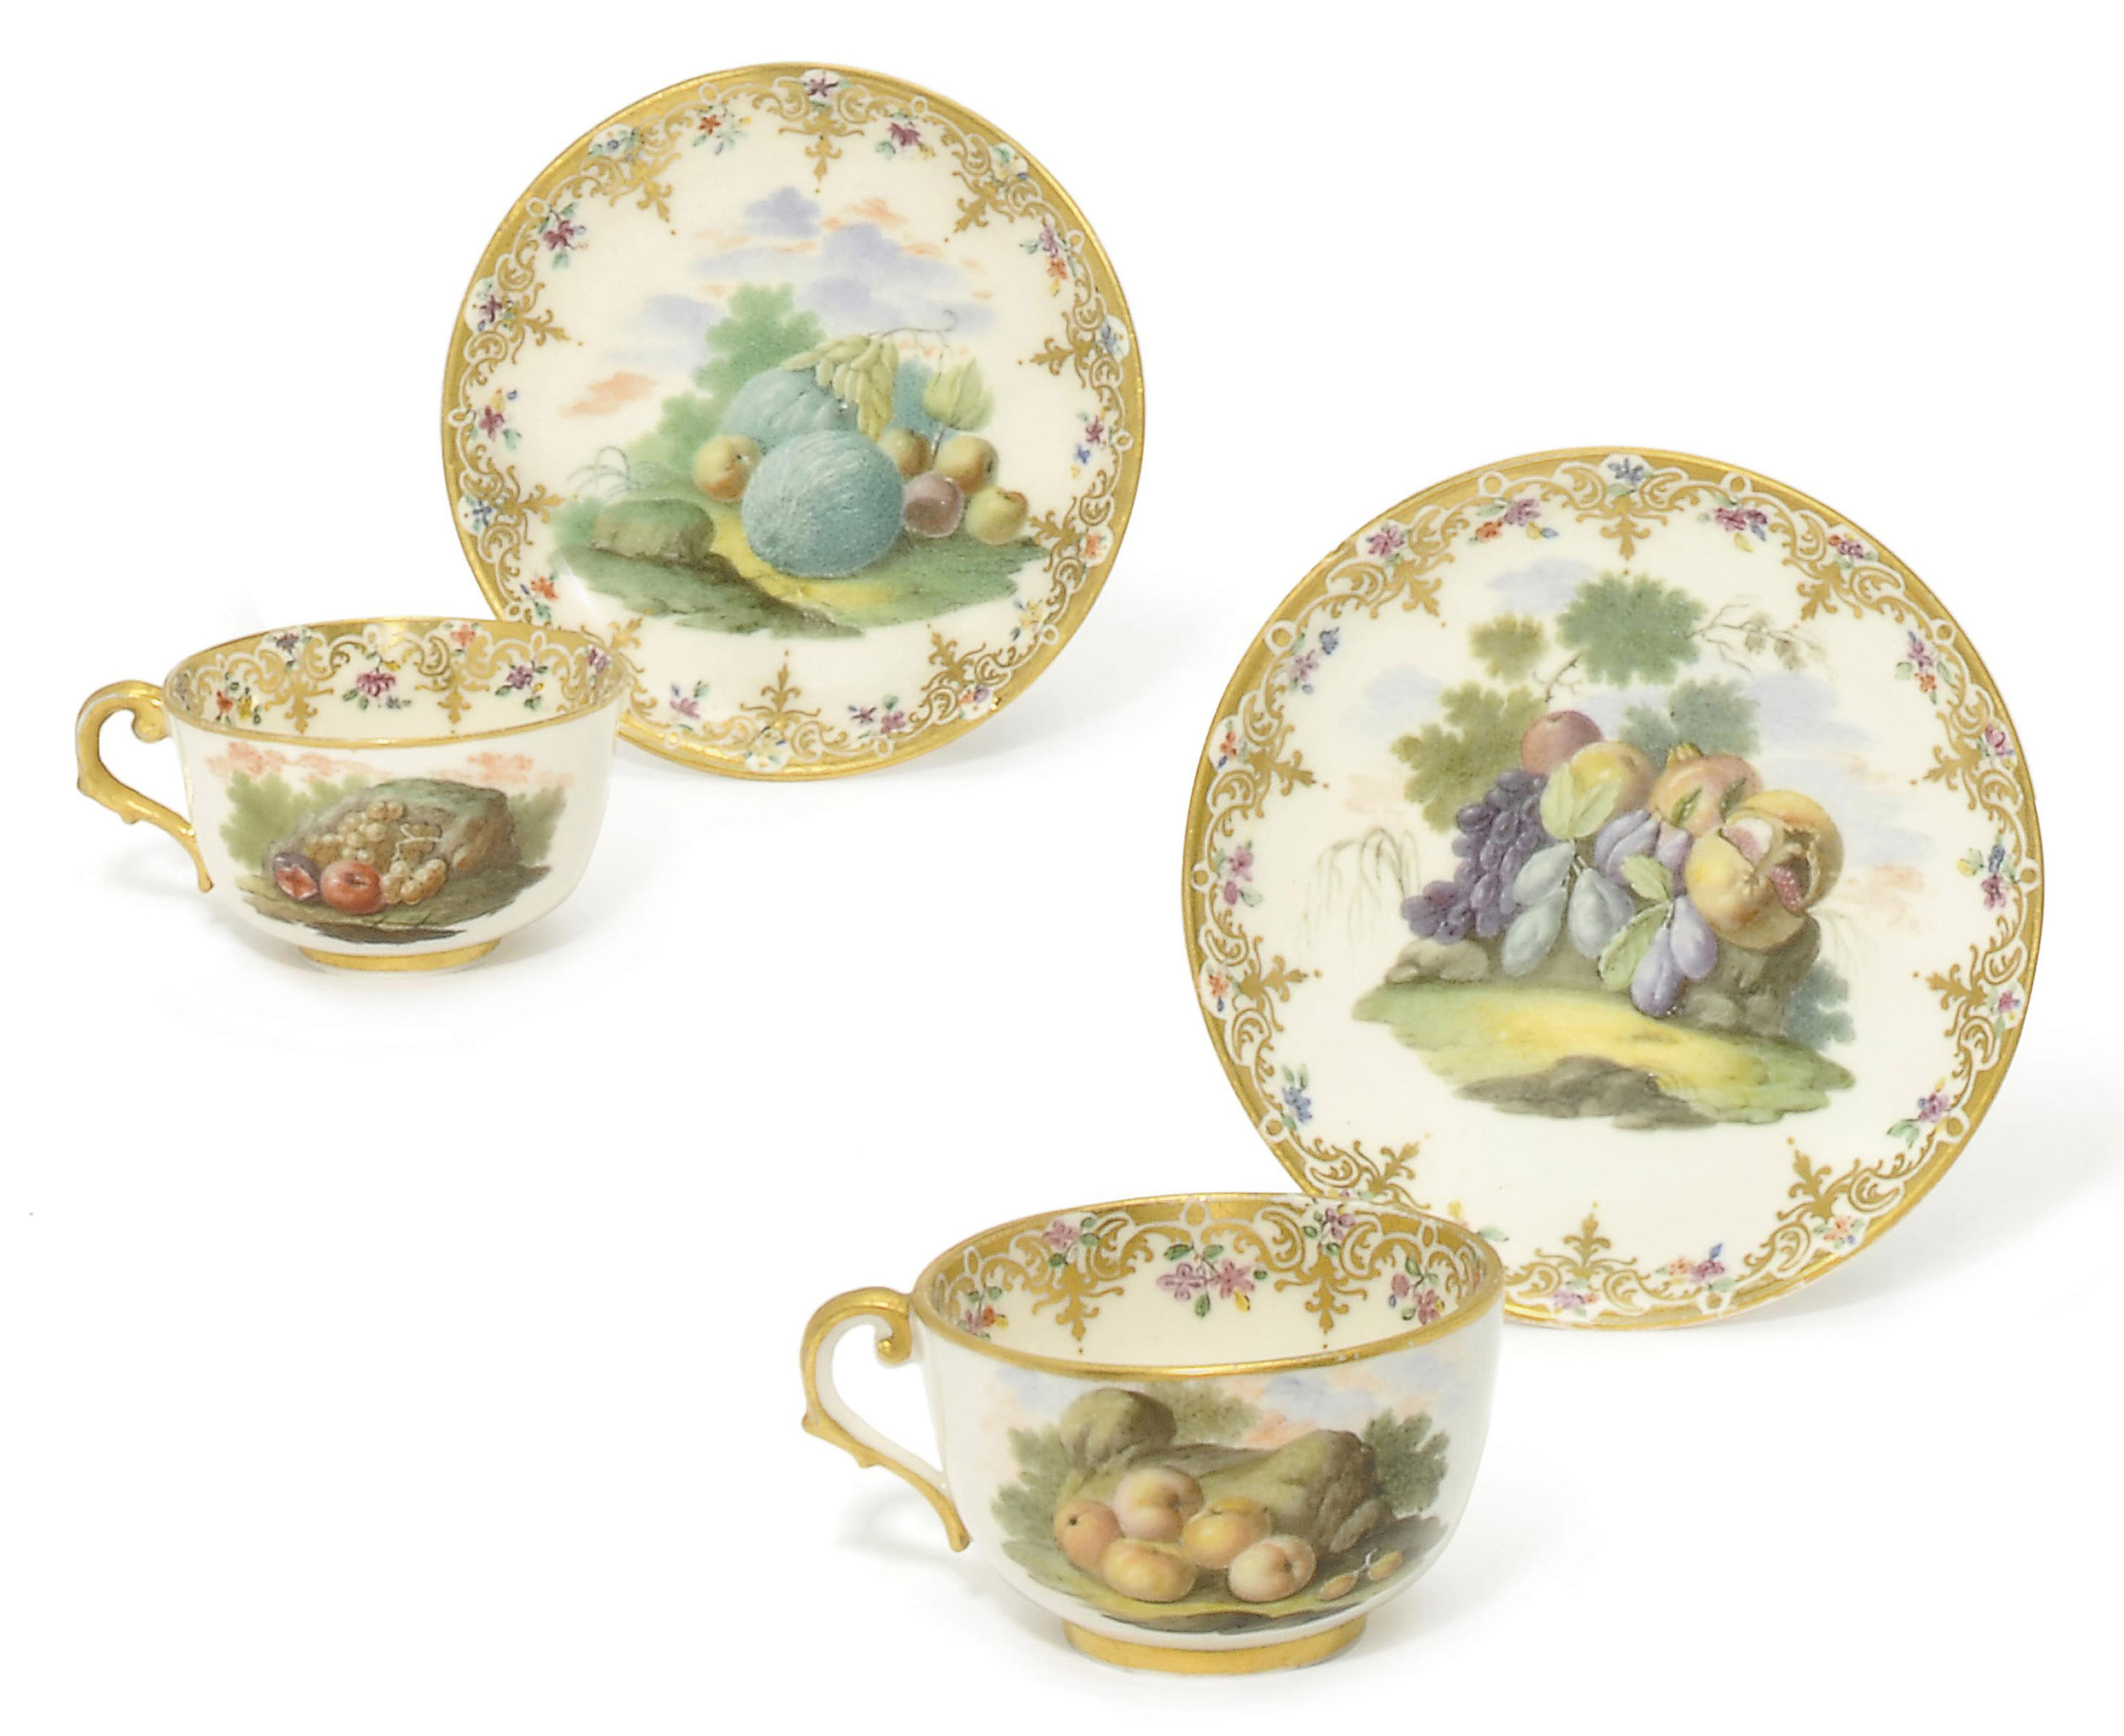 A PAIR OF CAPODIMONTE (CARLO III) TEACUPS AND SAUCERS